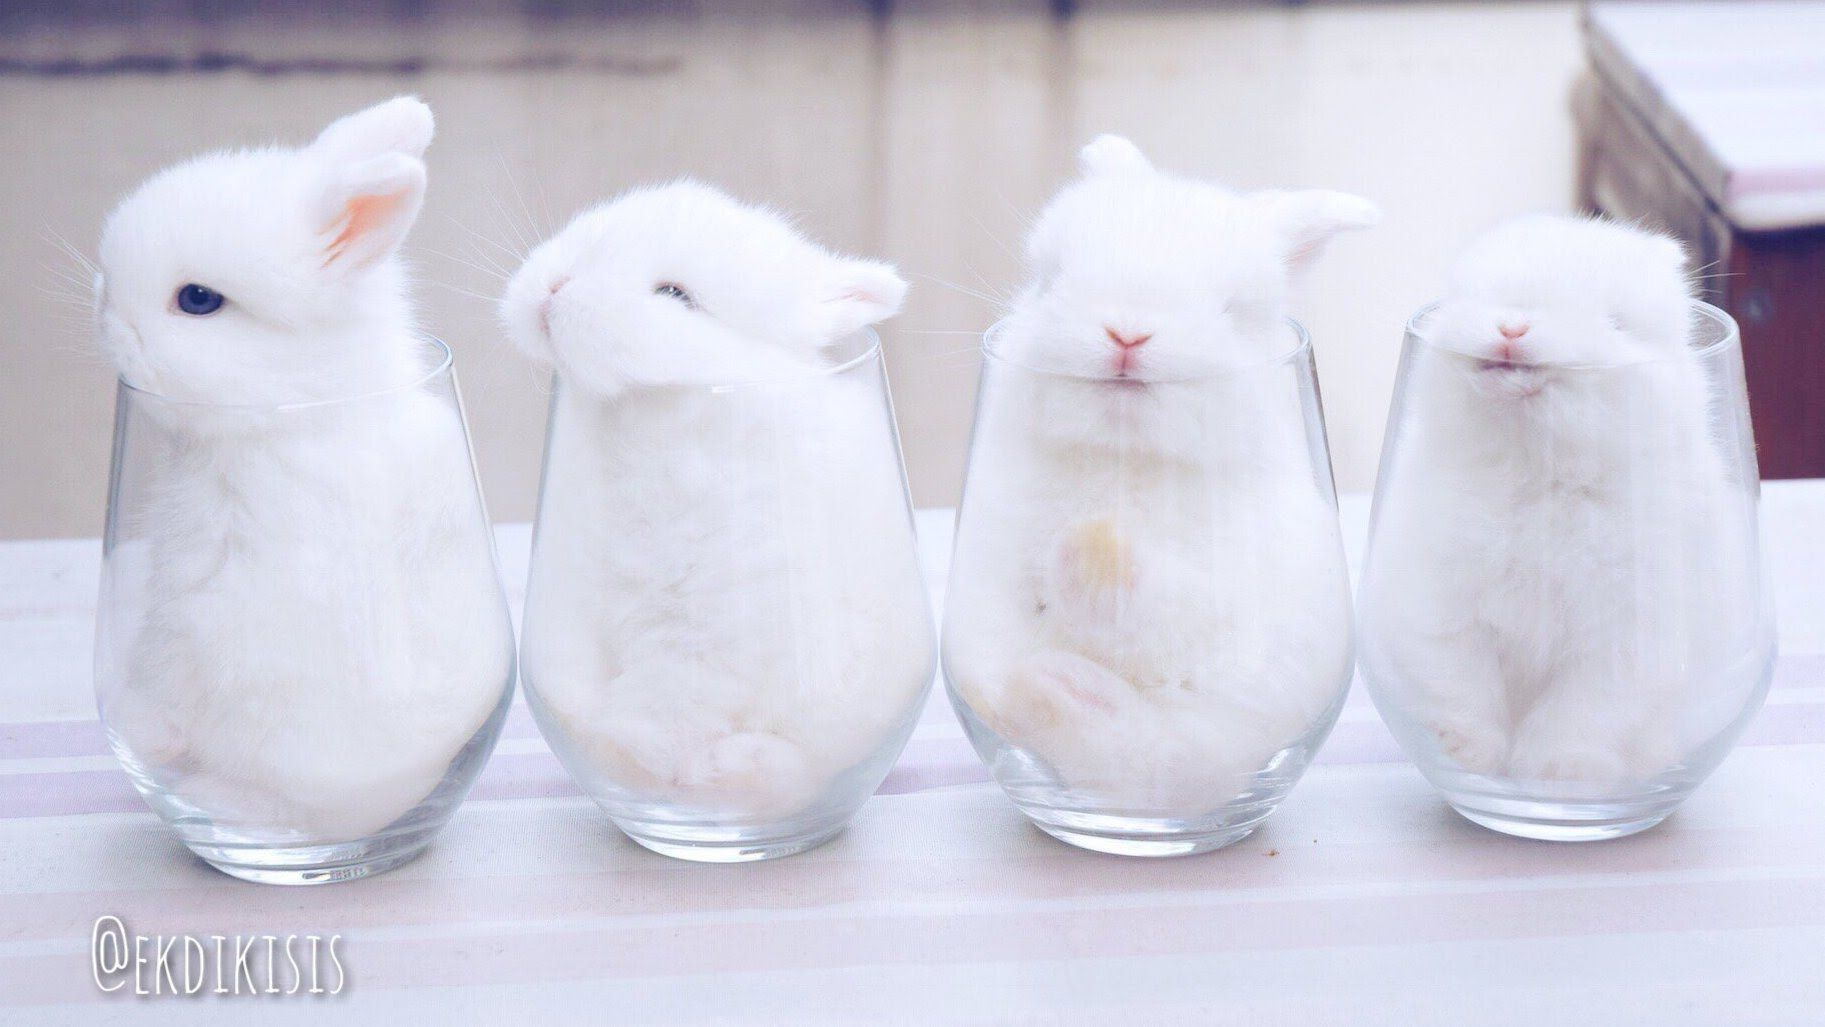 Cutest Bunny Video ever!